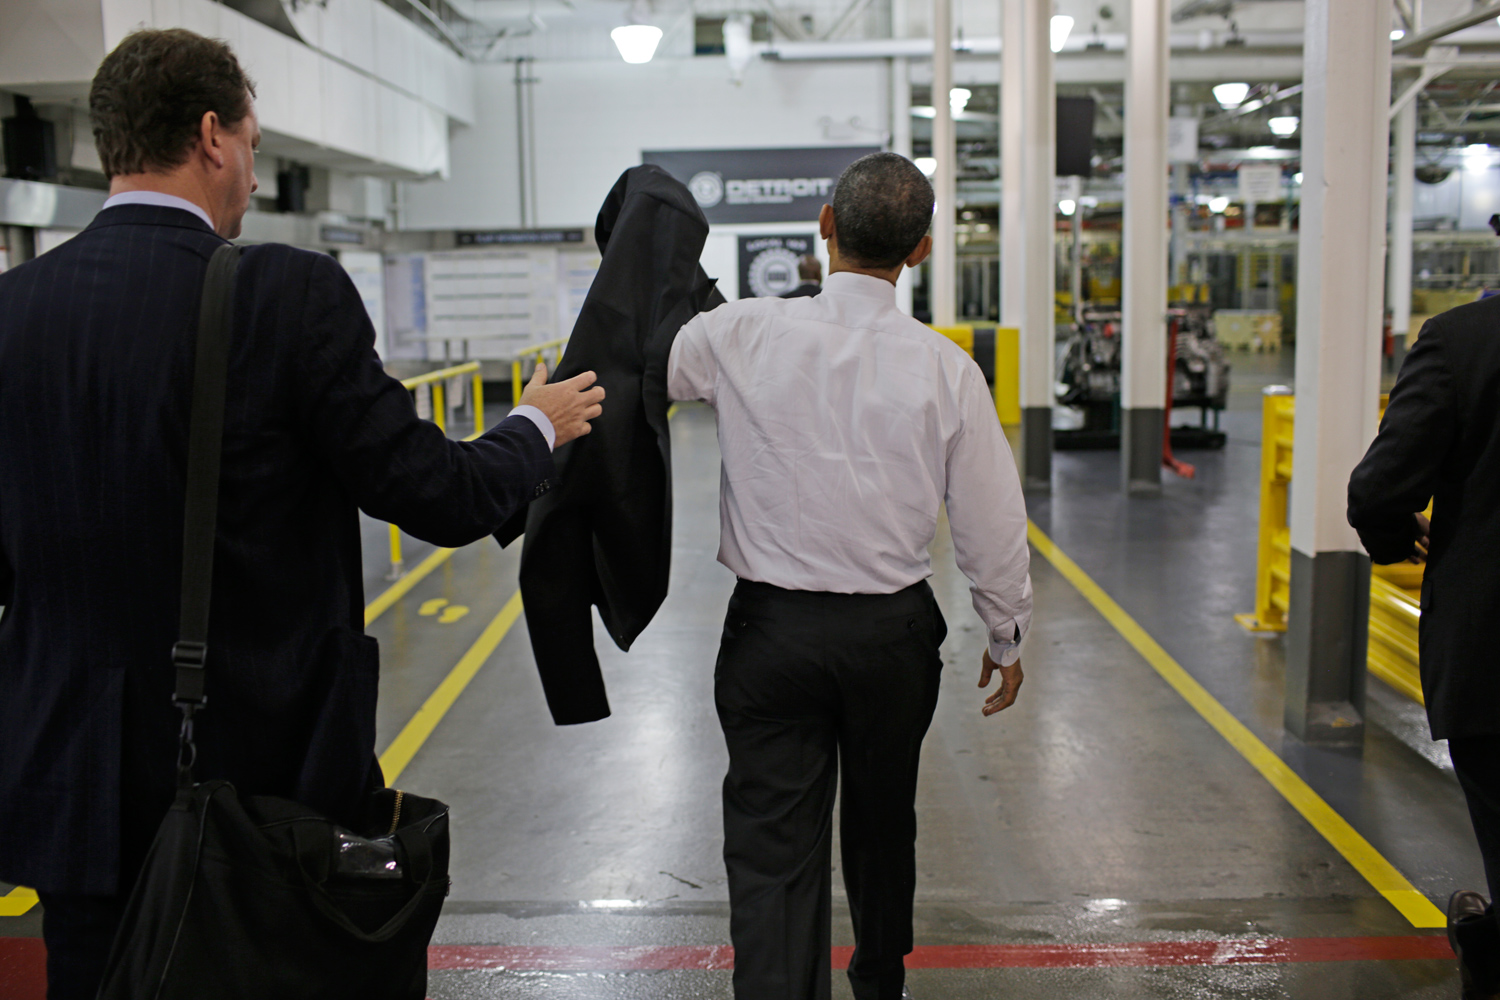 After speaking to the crowd and touring the plant's production facilities, Obama prepares to depart.